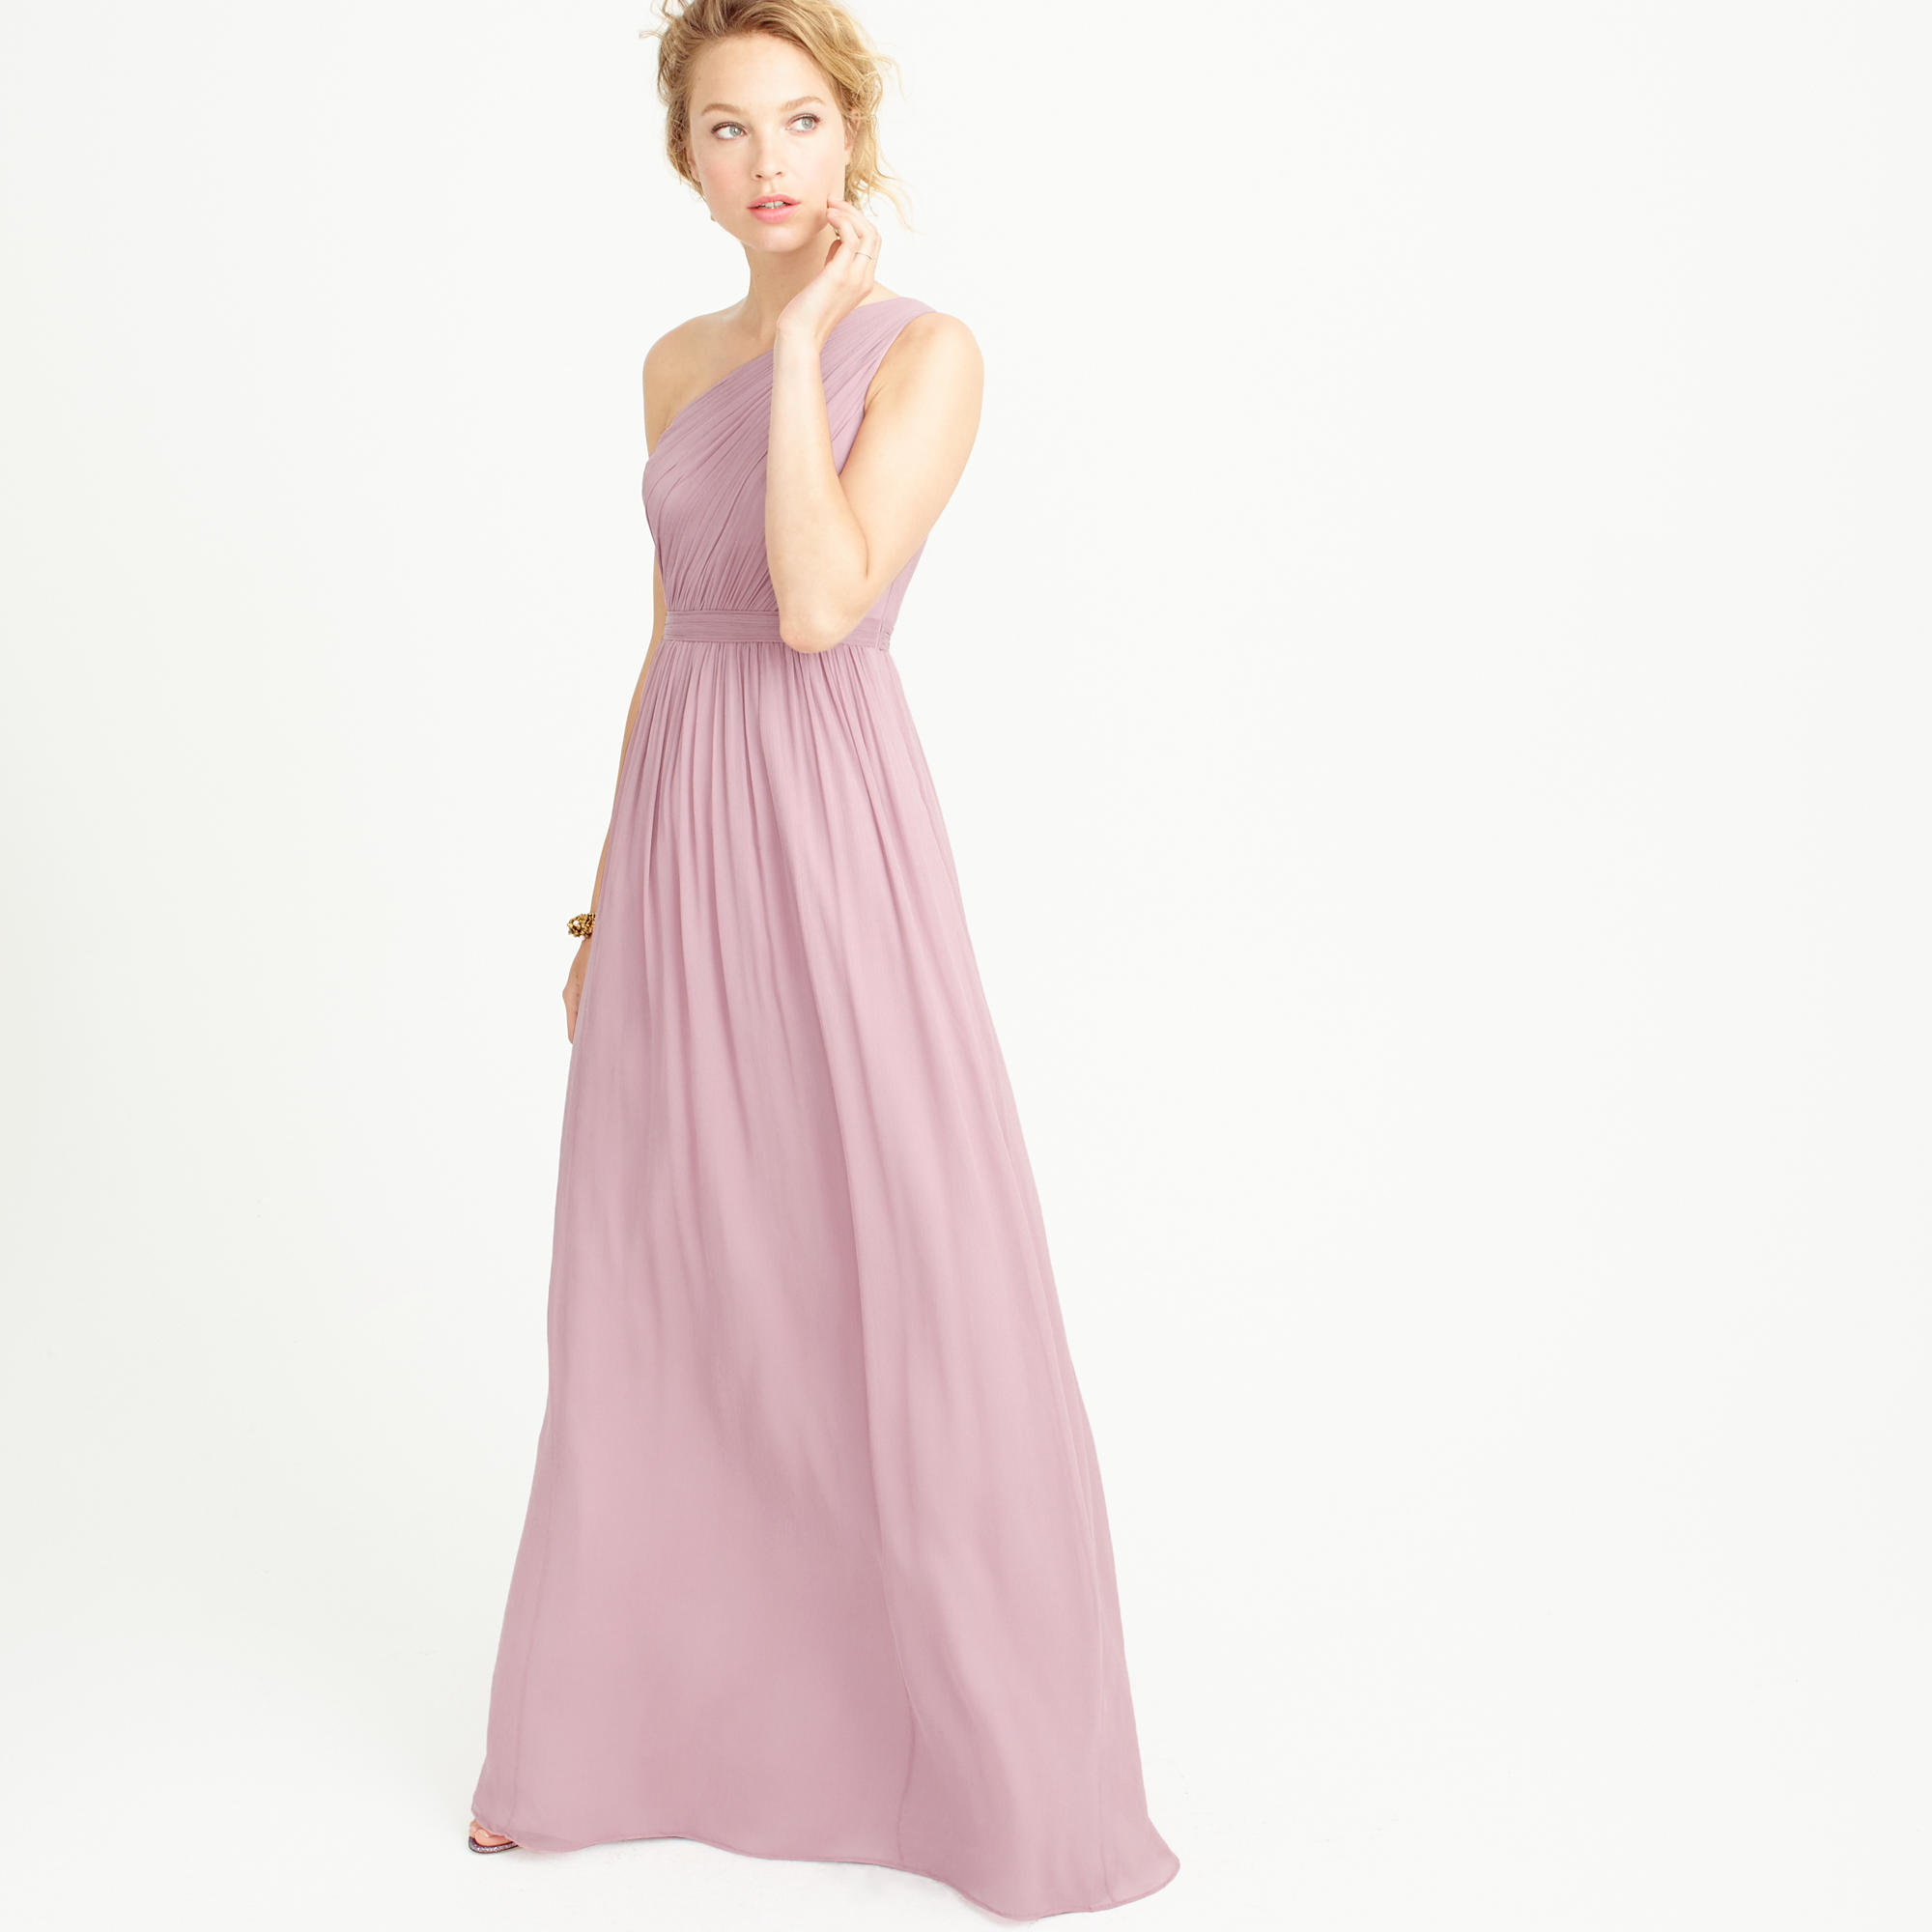 Silk chiffon long dress dress yp kylie long dress in silk chiffon wedding sizes 16 to 20 jew ombrellifo Image collections